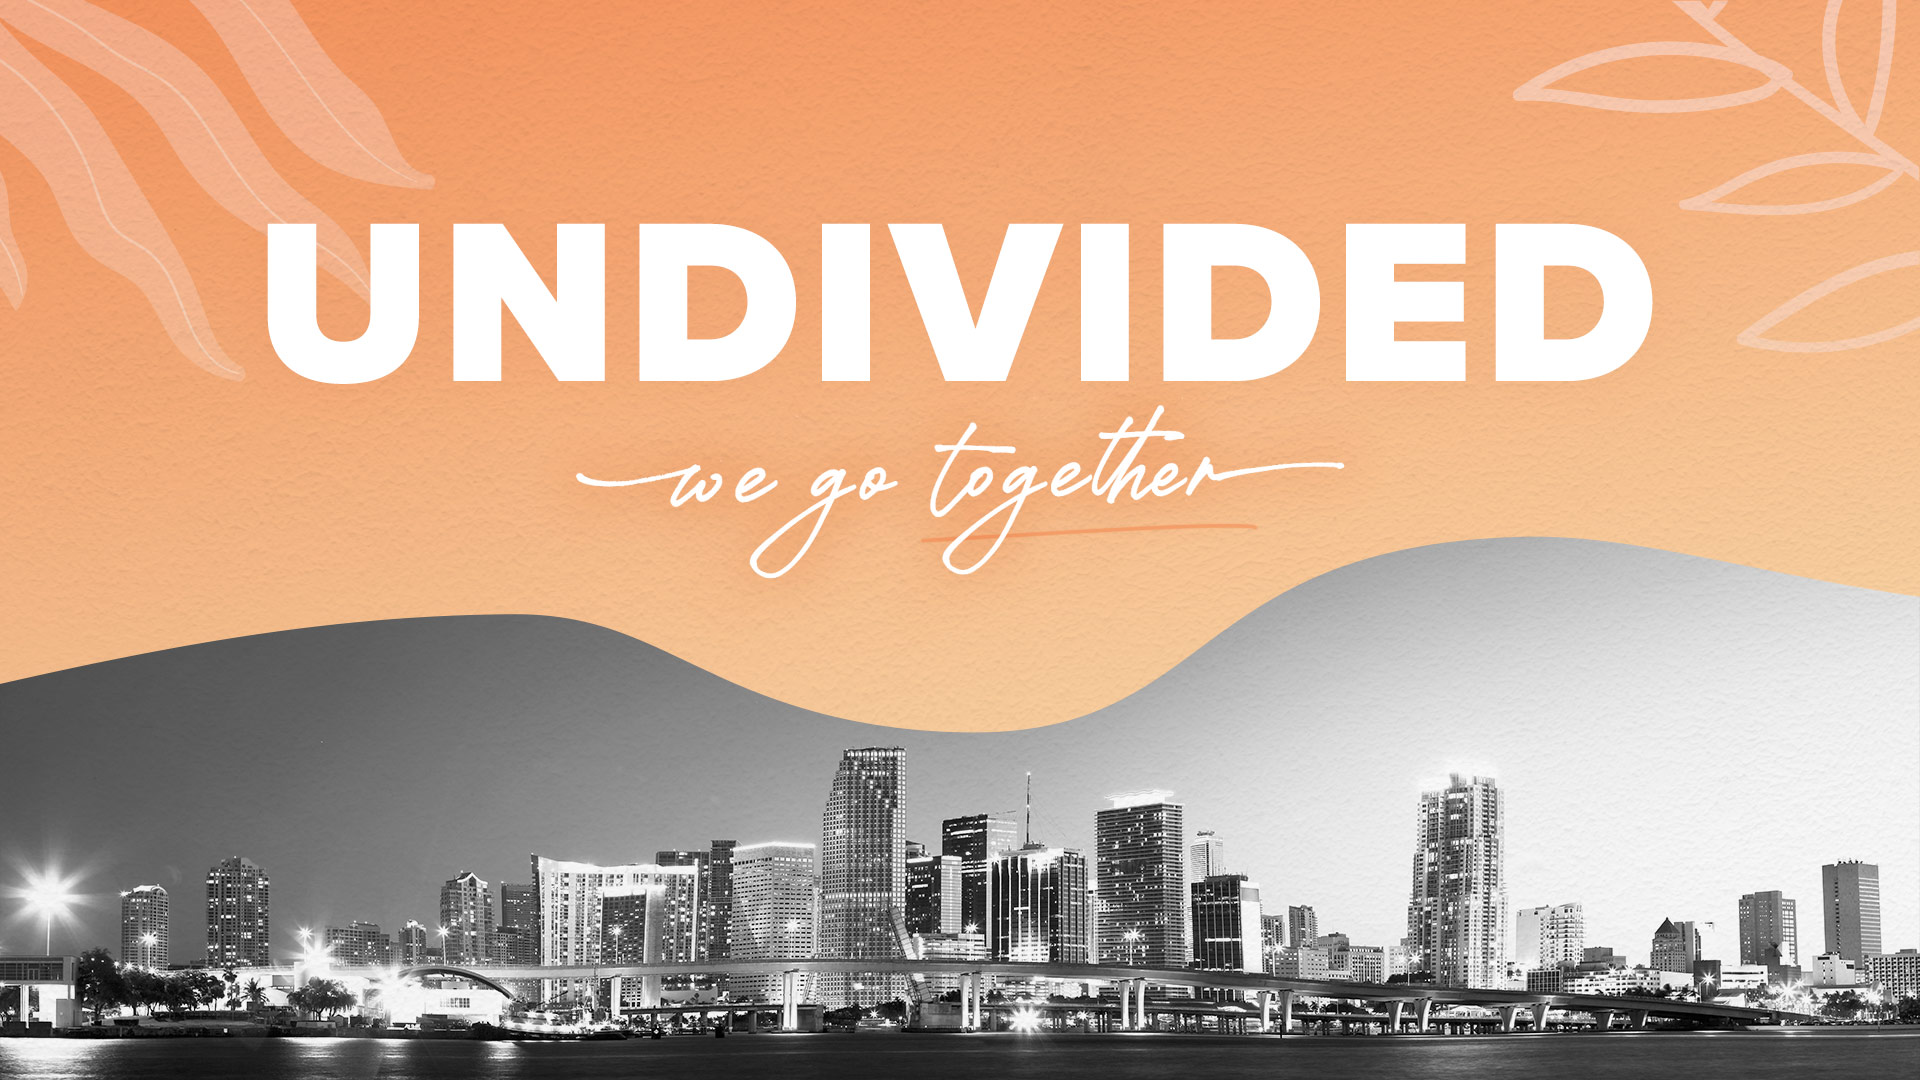 UNDIVIDED | We Go Together